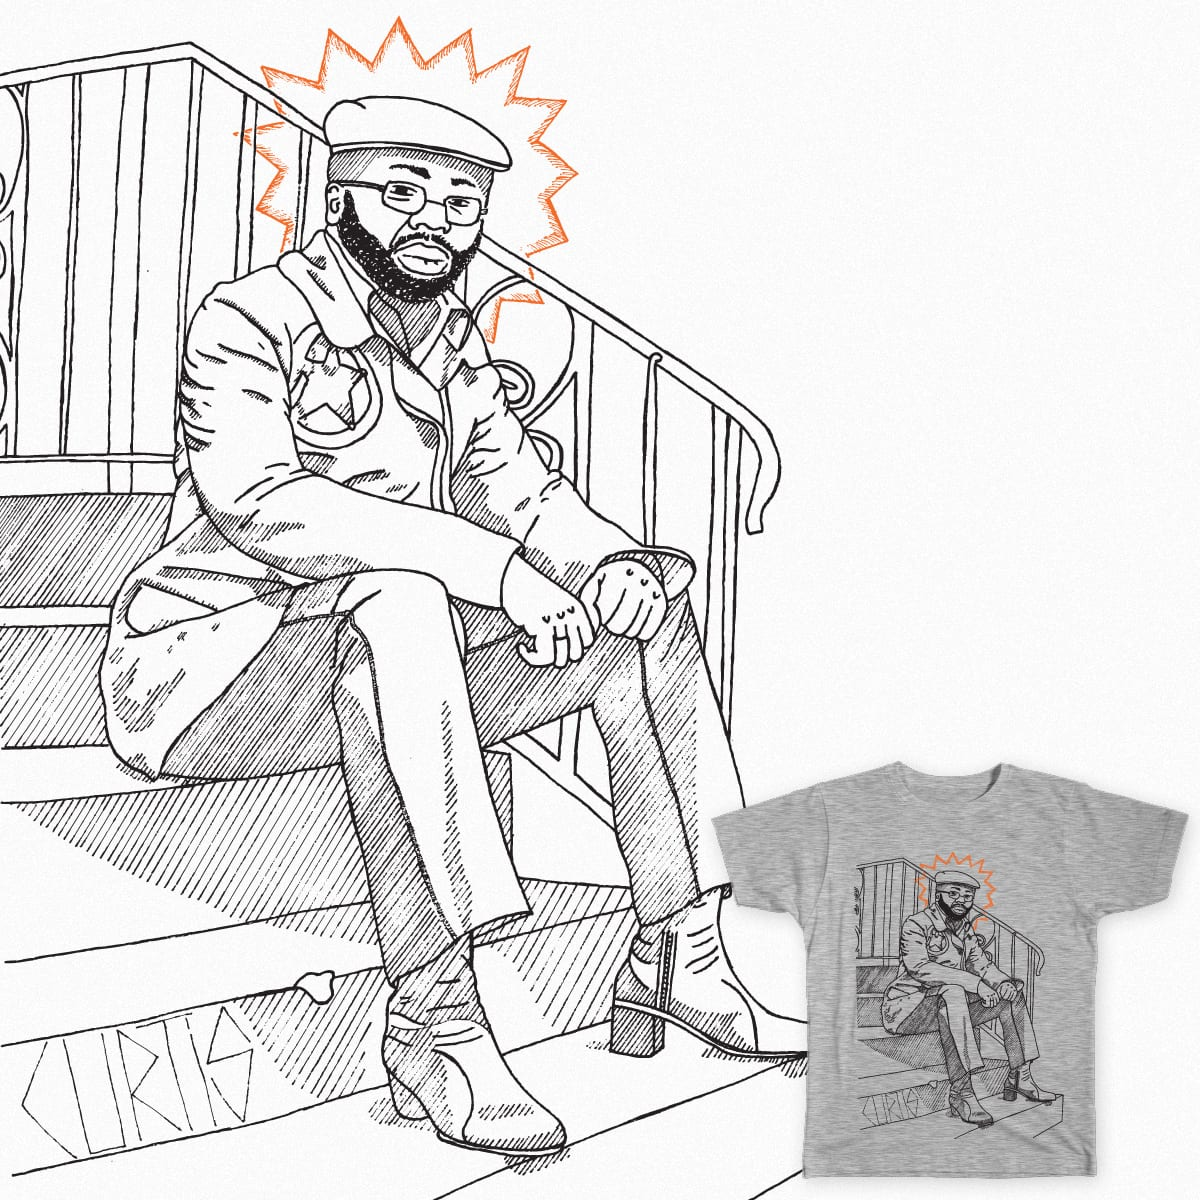 Curtis by polobpolo on Threadless